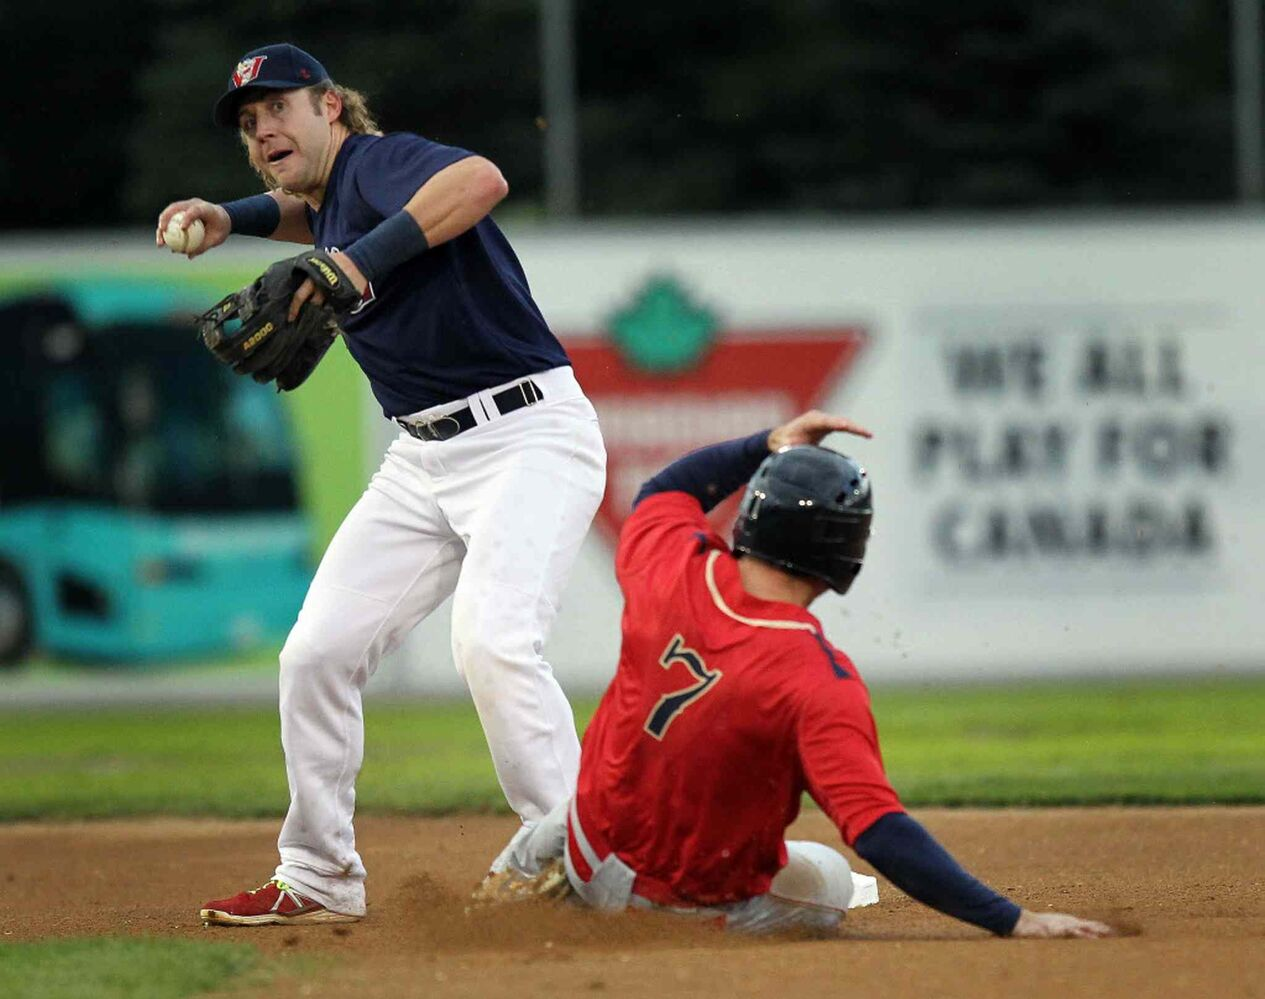 Winnipeg Goldeyes infielder #9 Brock Bond takes aim at first for the double play in the top of the first inning Wednesday evening at Shaw Park. (Phil Hossack / Winnipeg Free Press)